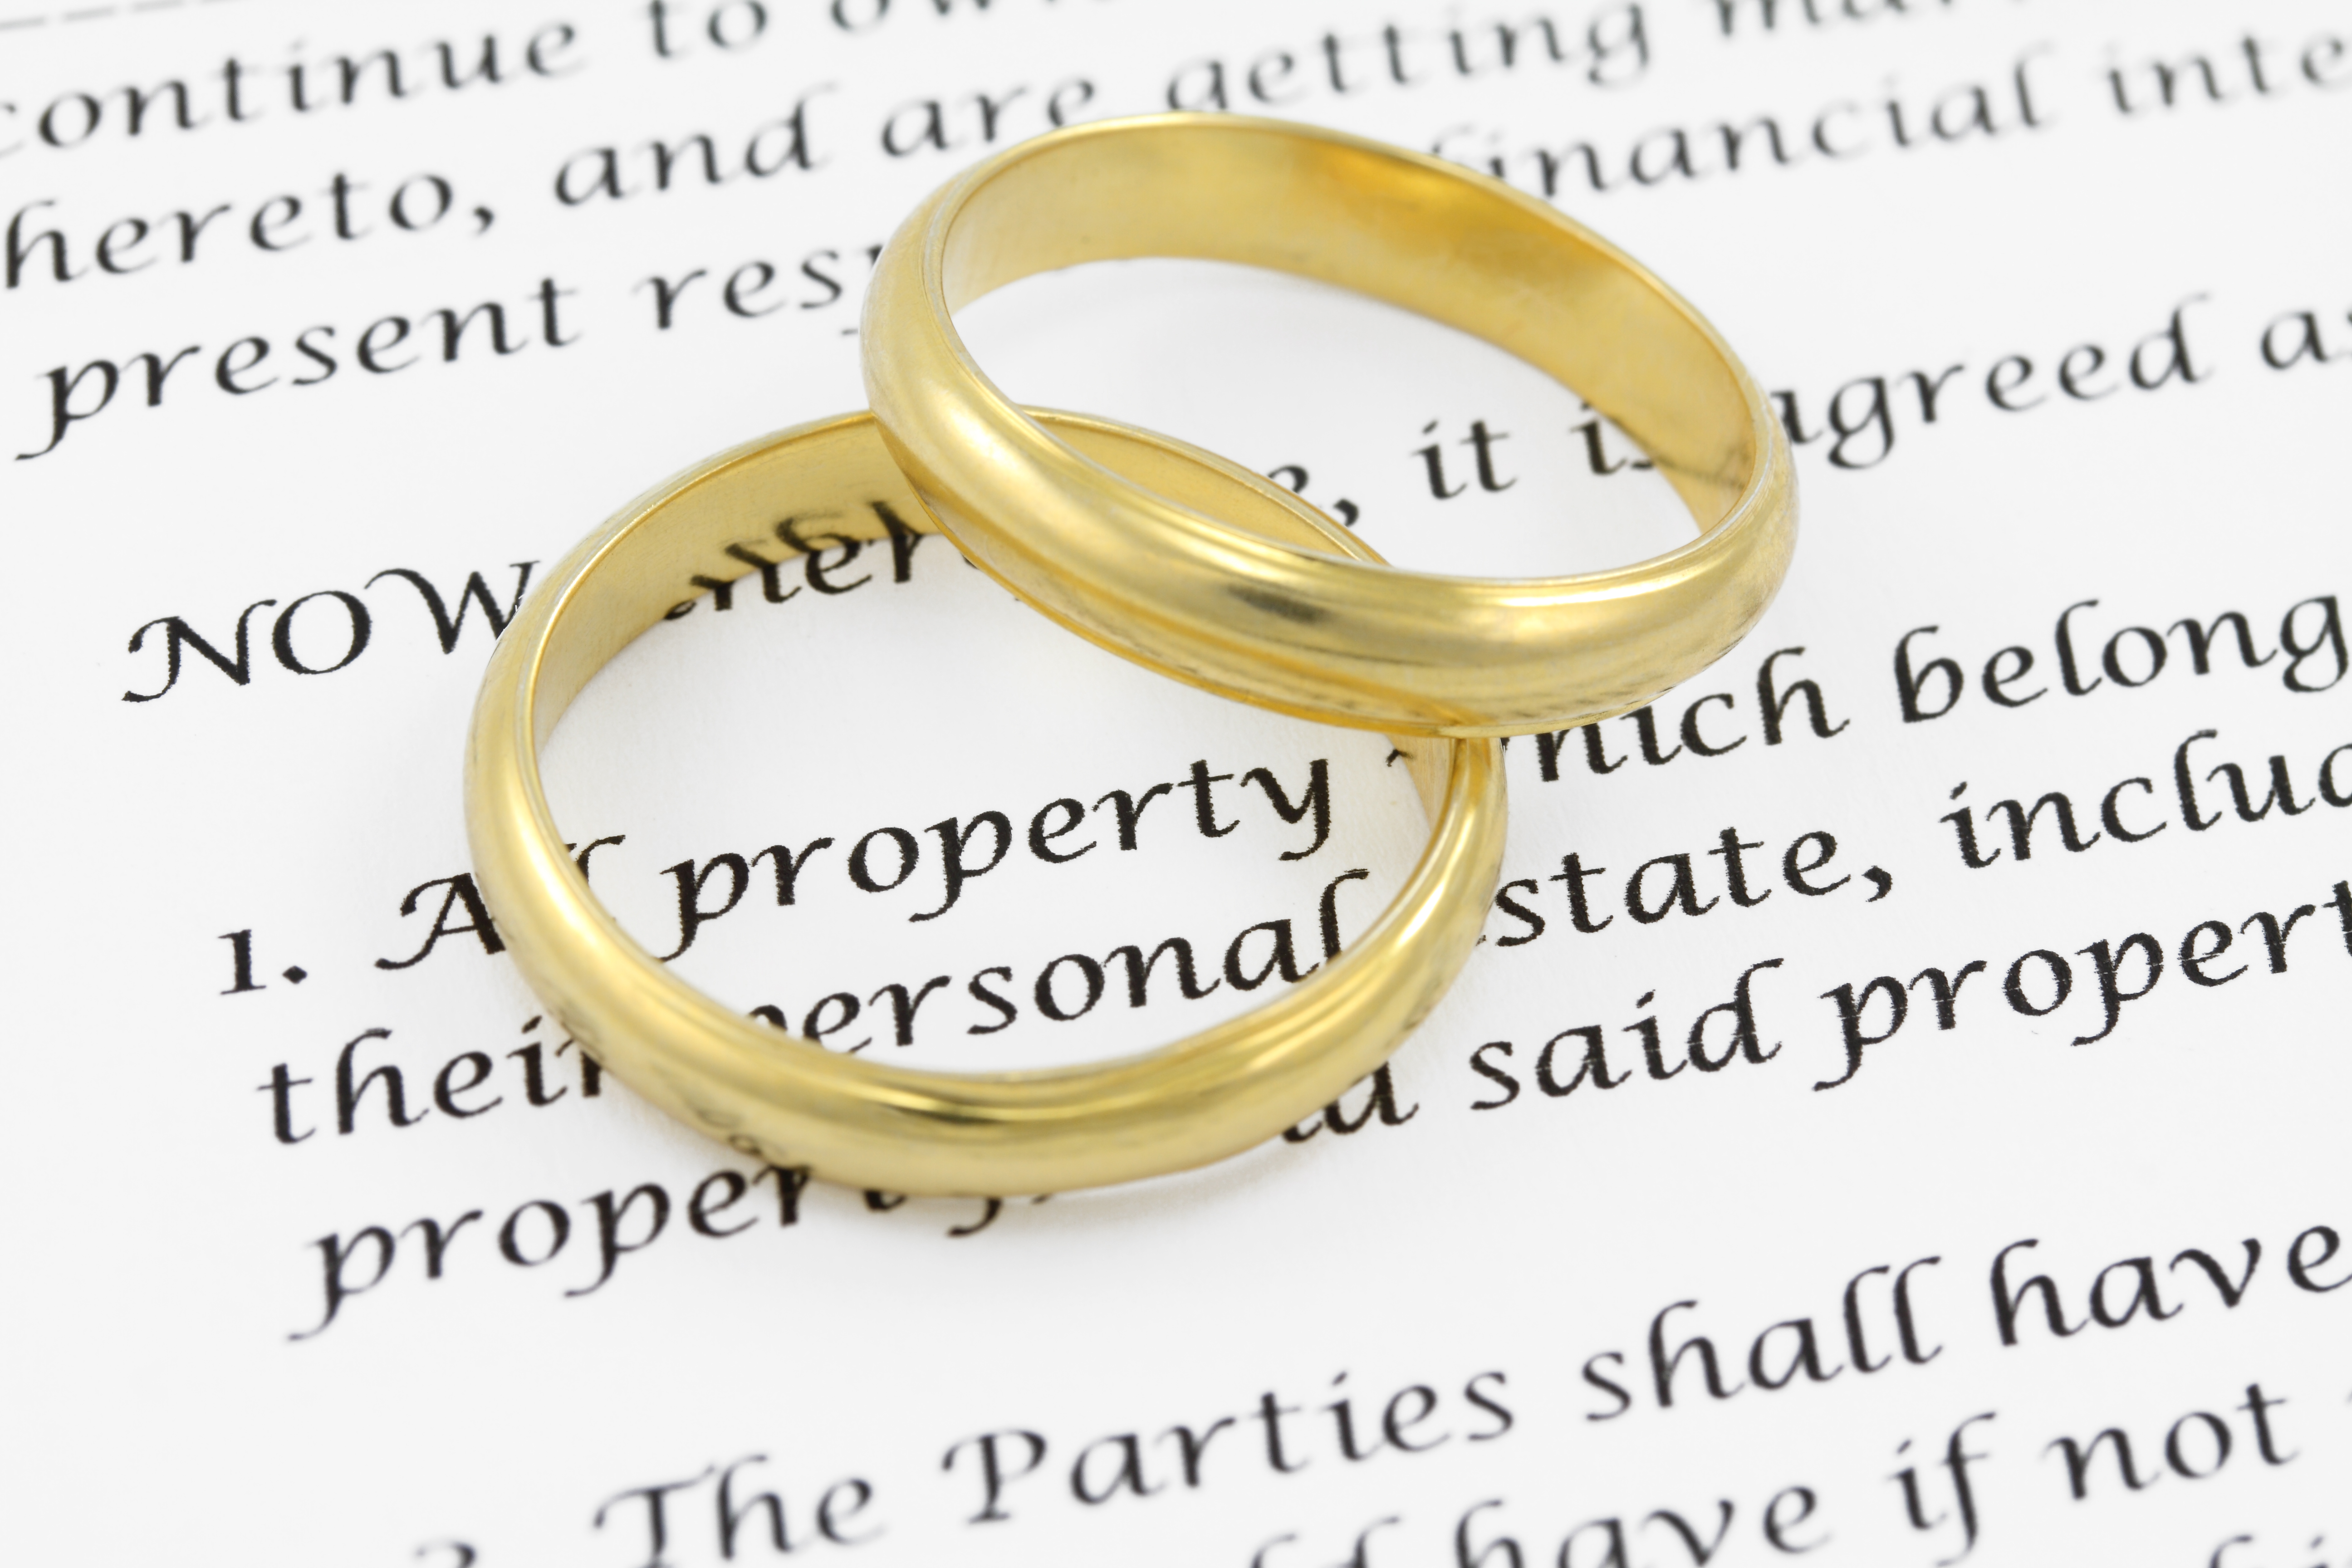 Are Gifts Given During a Marriage Marital Property or Separate Property